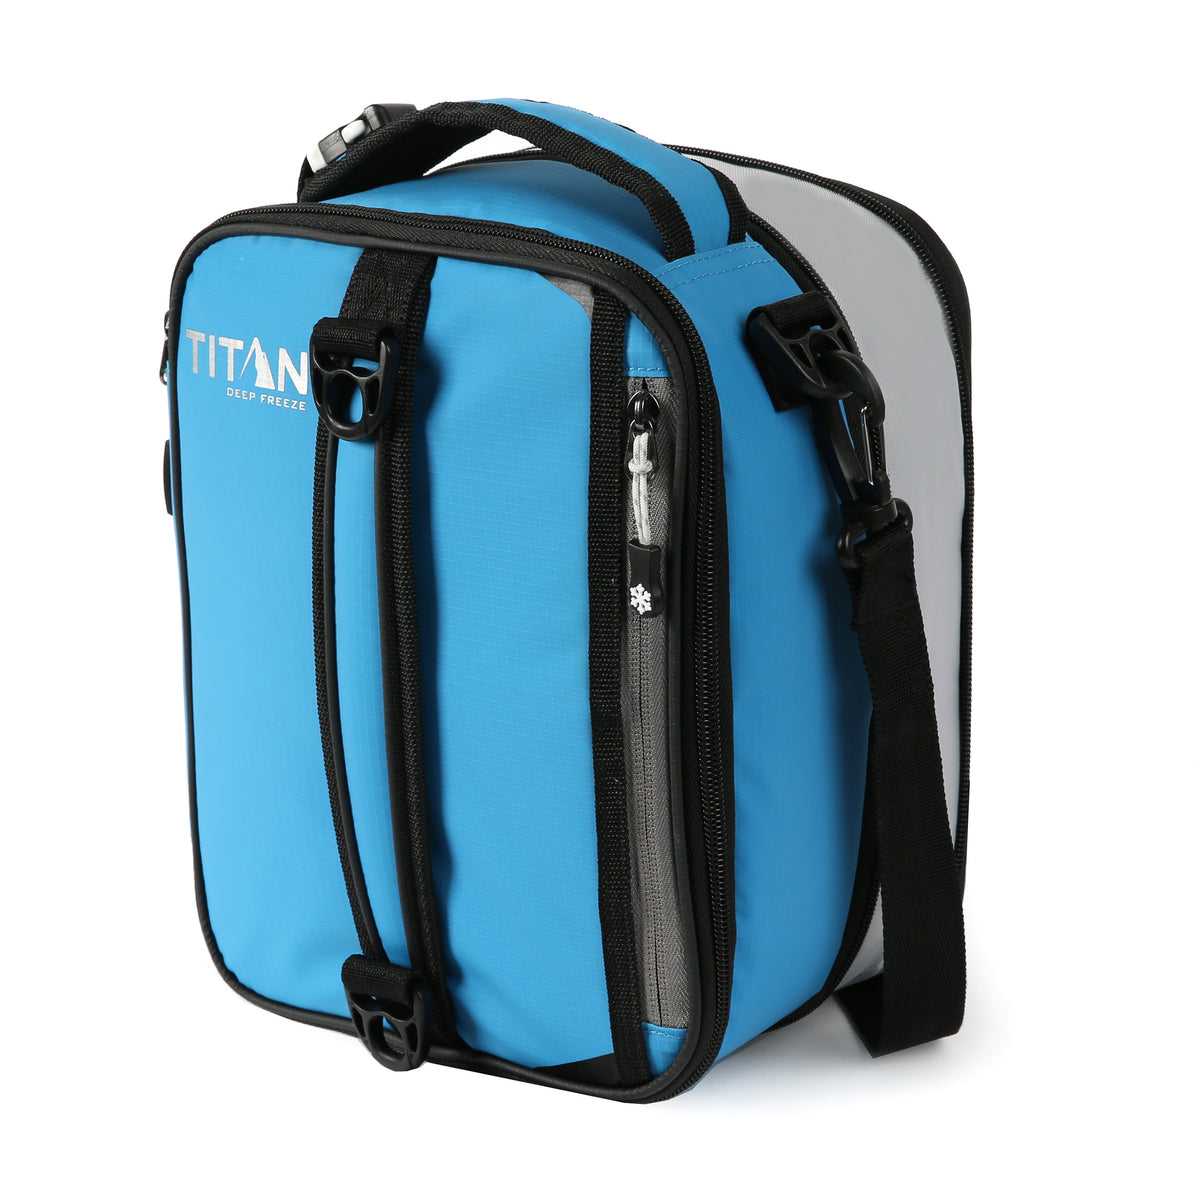 Titan Deep Freeze® Expandable Lunch Box - Blue - Front, Expanded